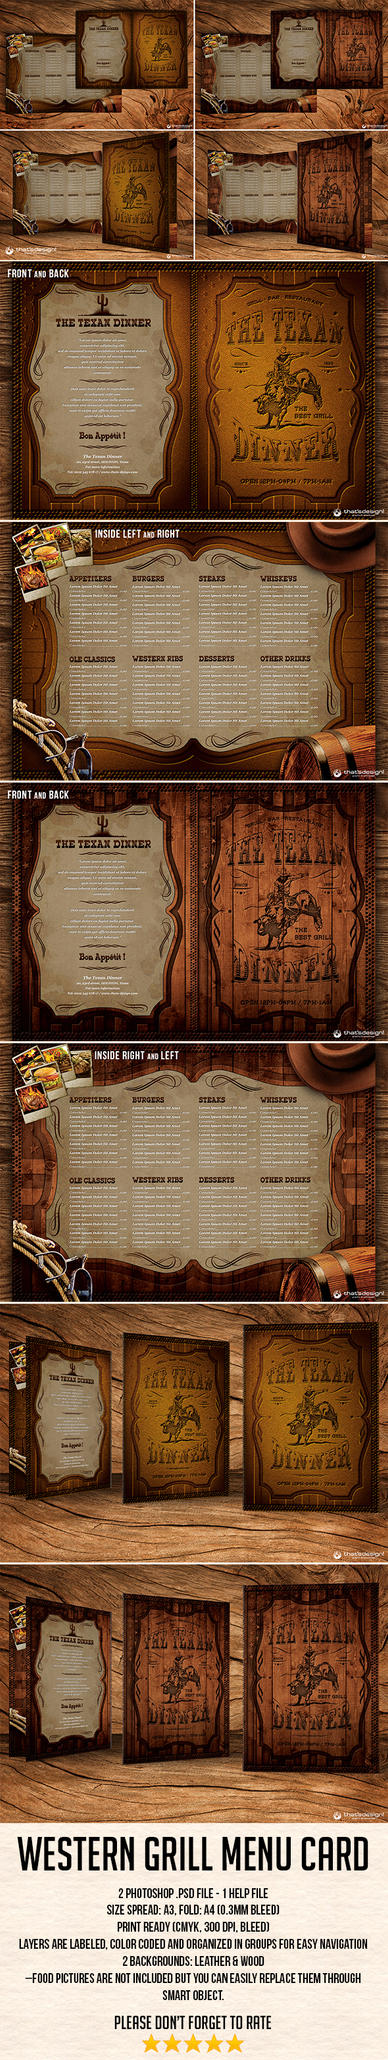 Western Grill Menu Card Template by Thats-Design